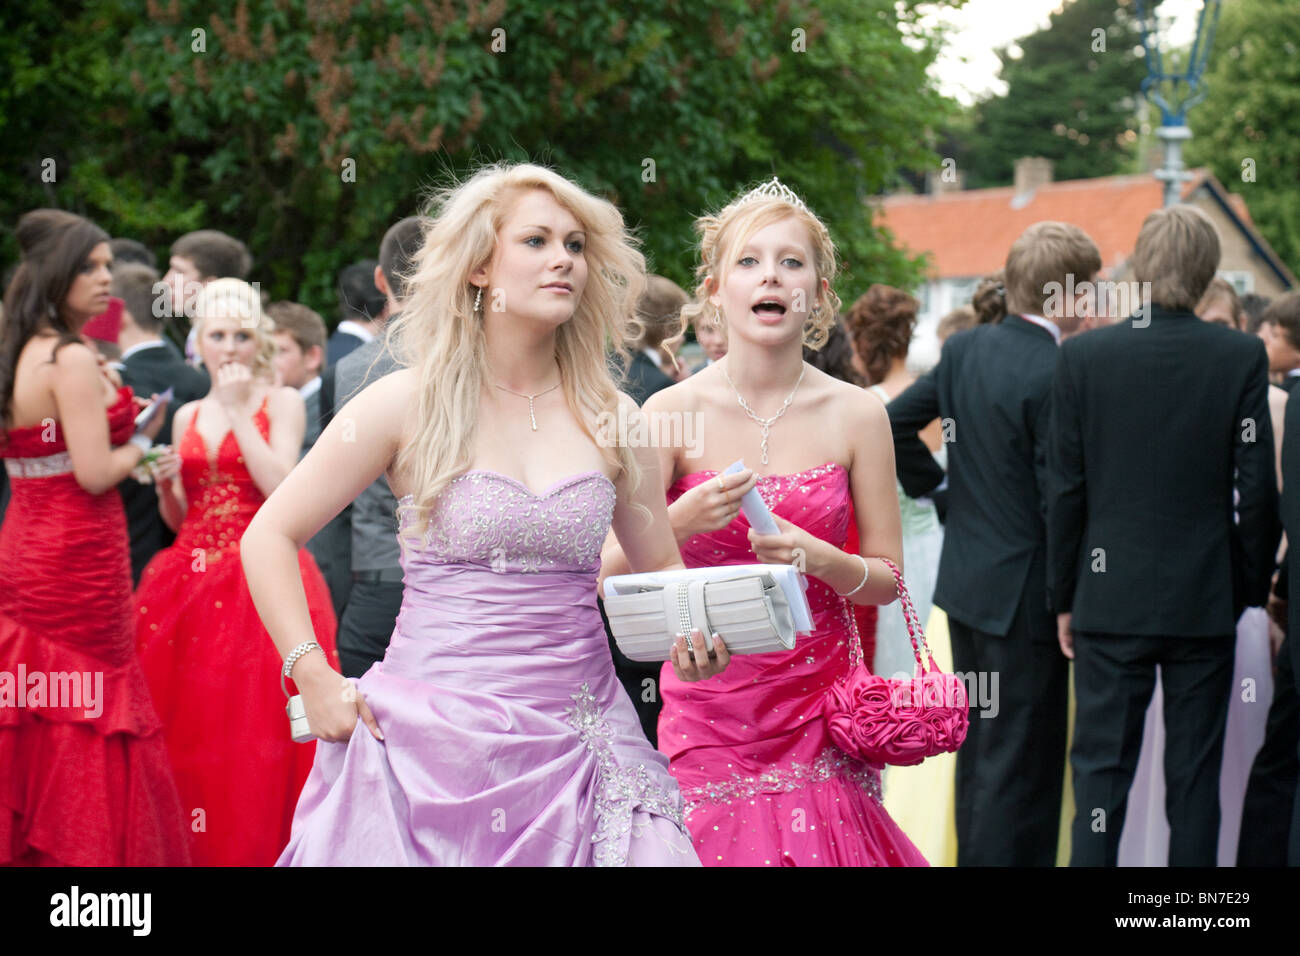 Teenage girls and boys dressed up for their Secondary School Prom,  Cambridgeshire, UK - Stock Image